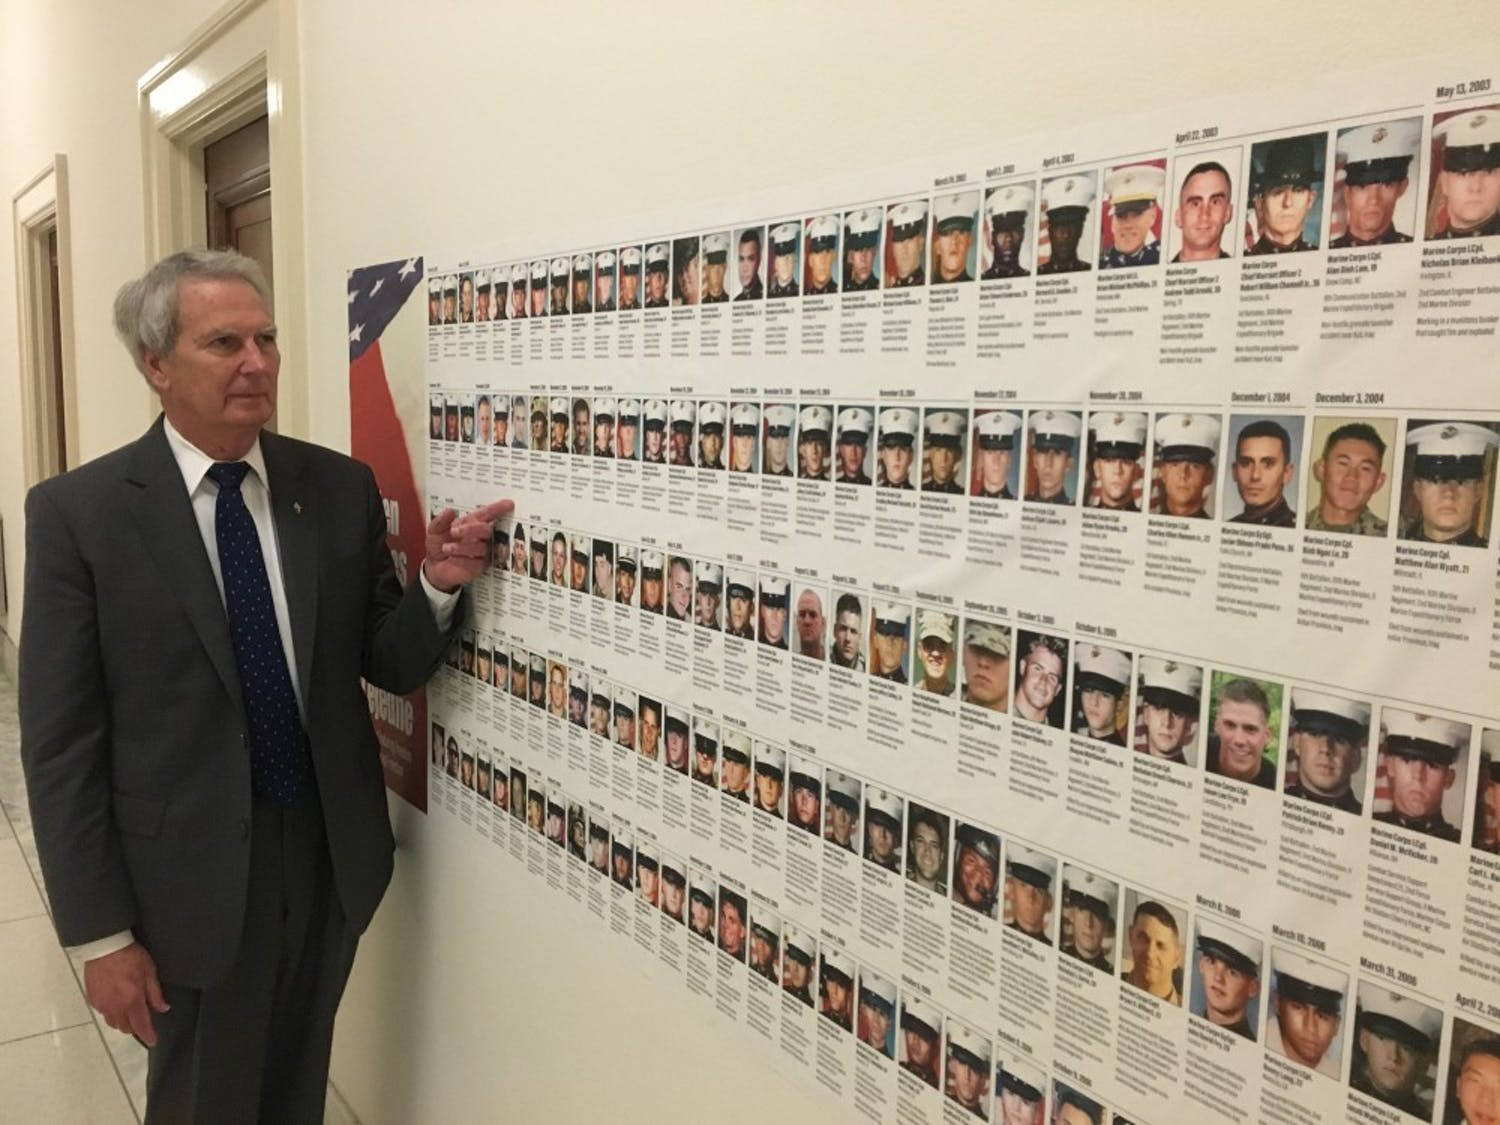 U.S. Rep. Walter Jones, R-N.C., stands in front of a wall of photos of fallen soldiers outside his office. Jones sends condolence letters to the families of soldiers who have died in the Middle East because of his decision to vote in favor of the Iraq war in 2002. Photo courtesy of Allison Tucker.